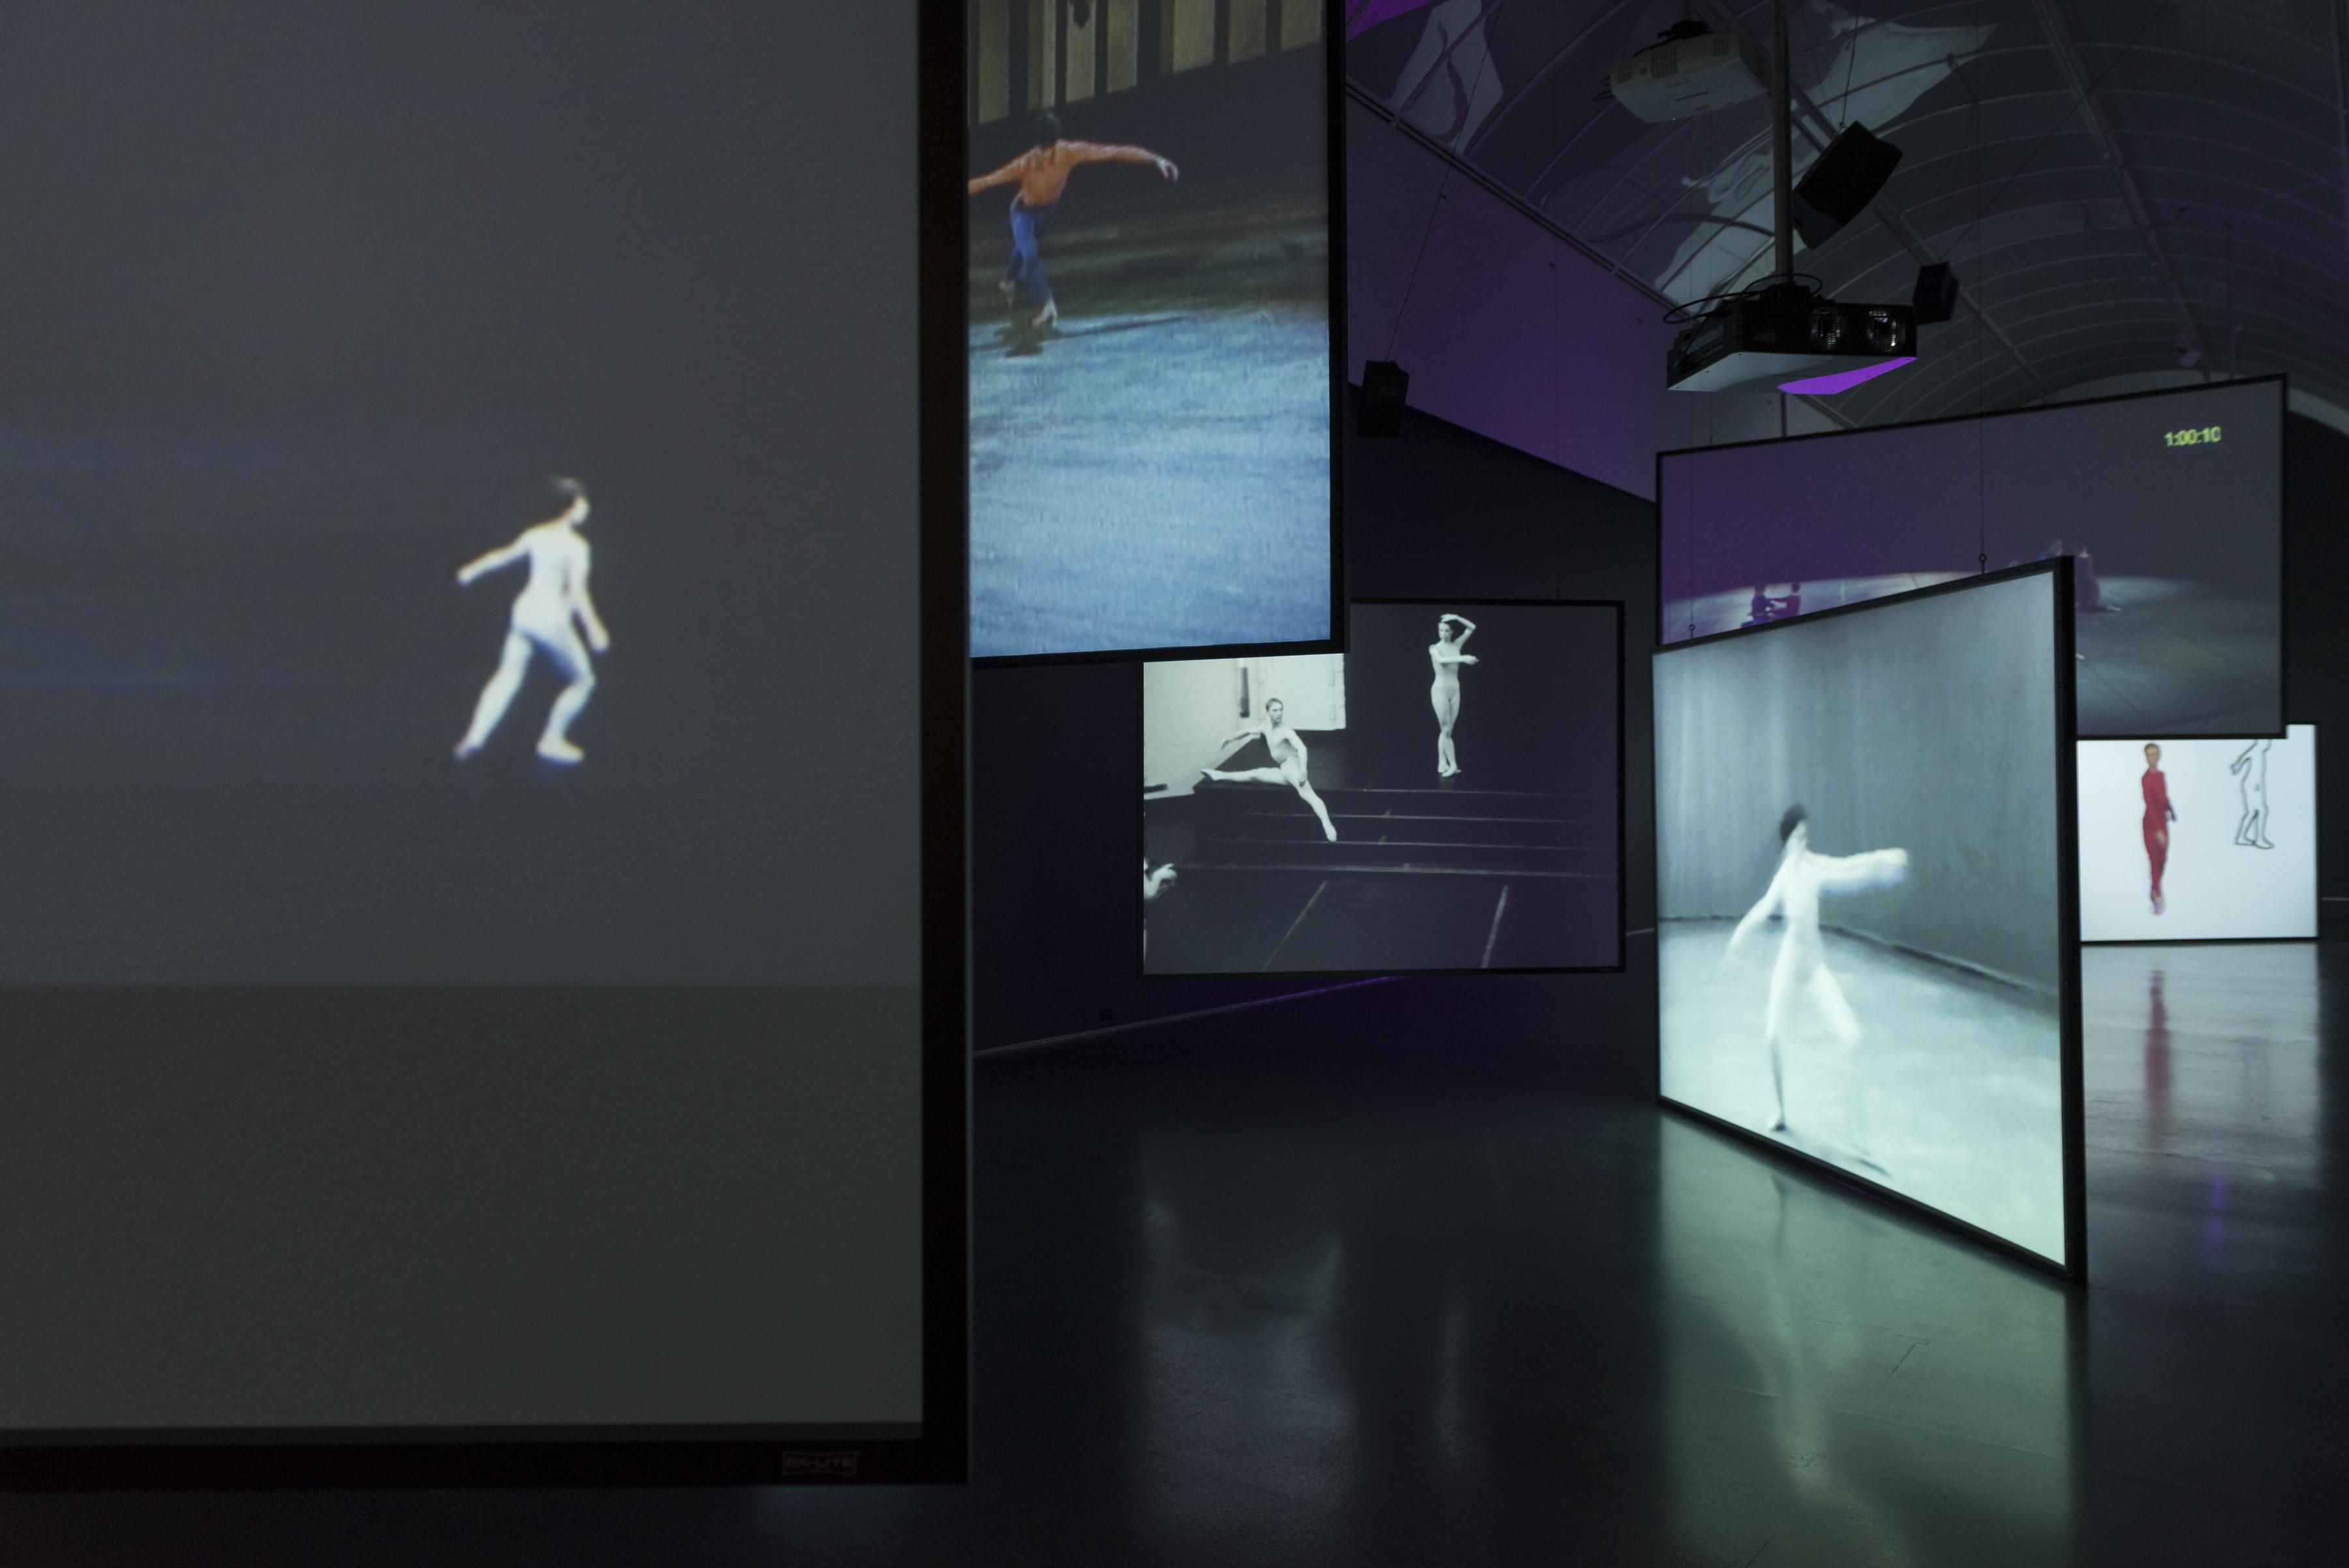 A large room is filled with projection screens hung at different heights and angles. The screens depicts dancers performing choreography.